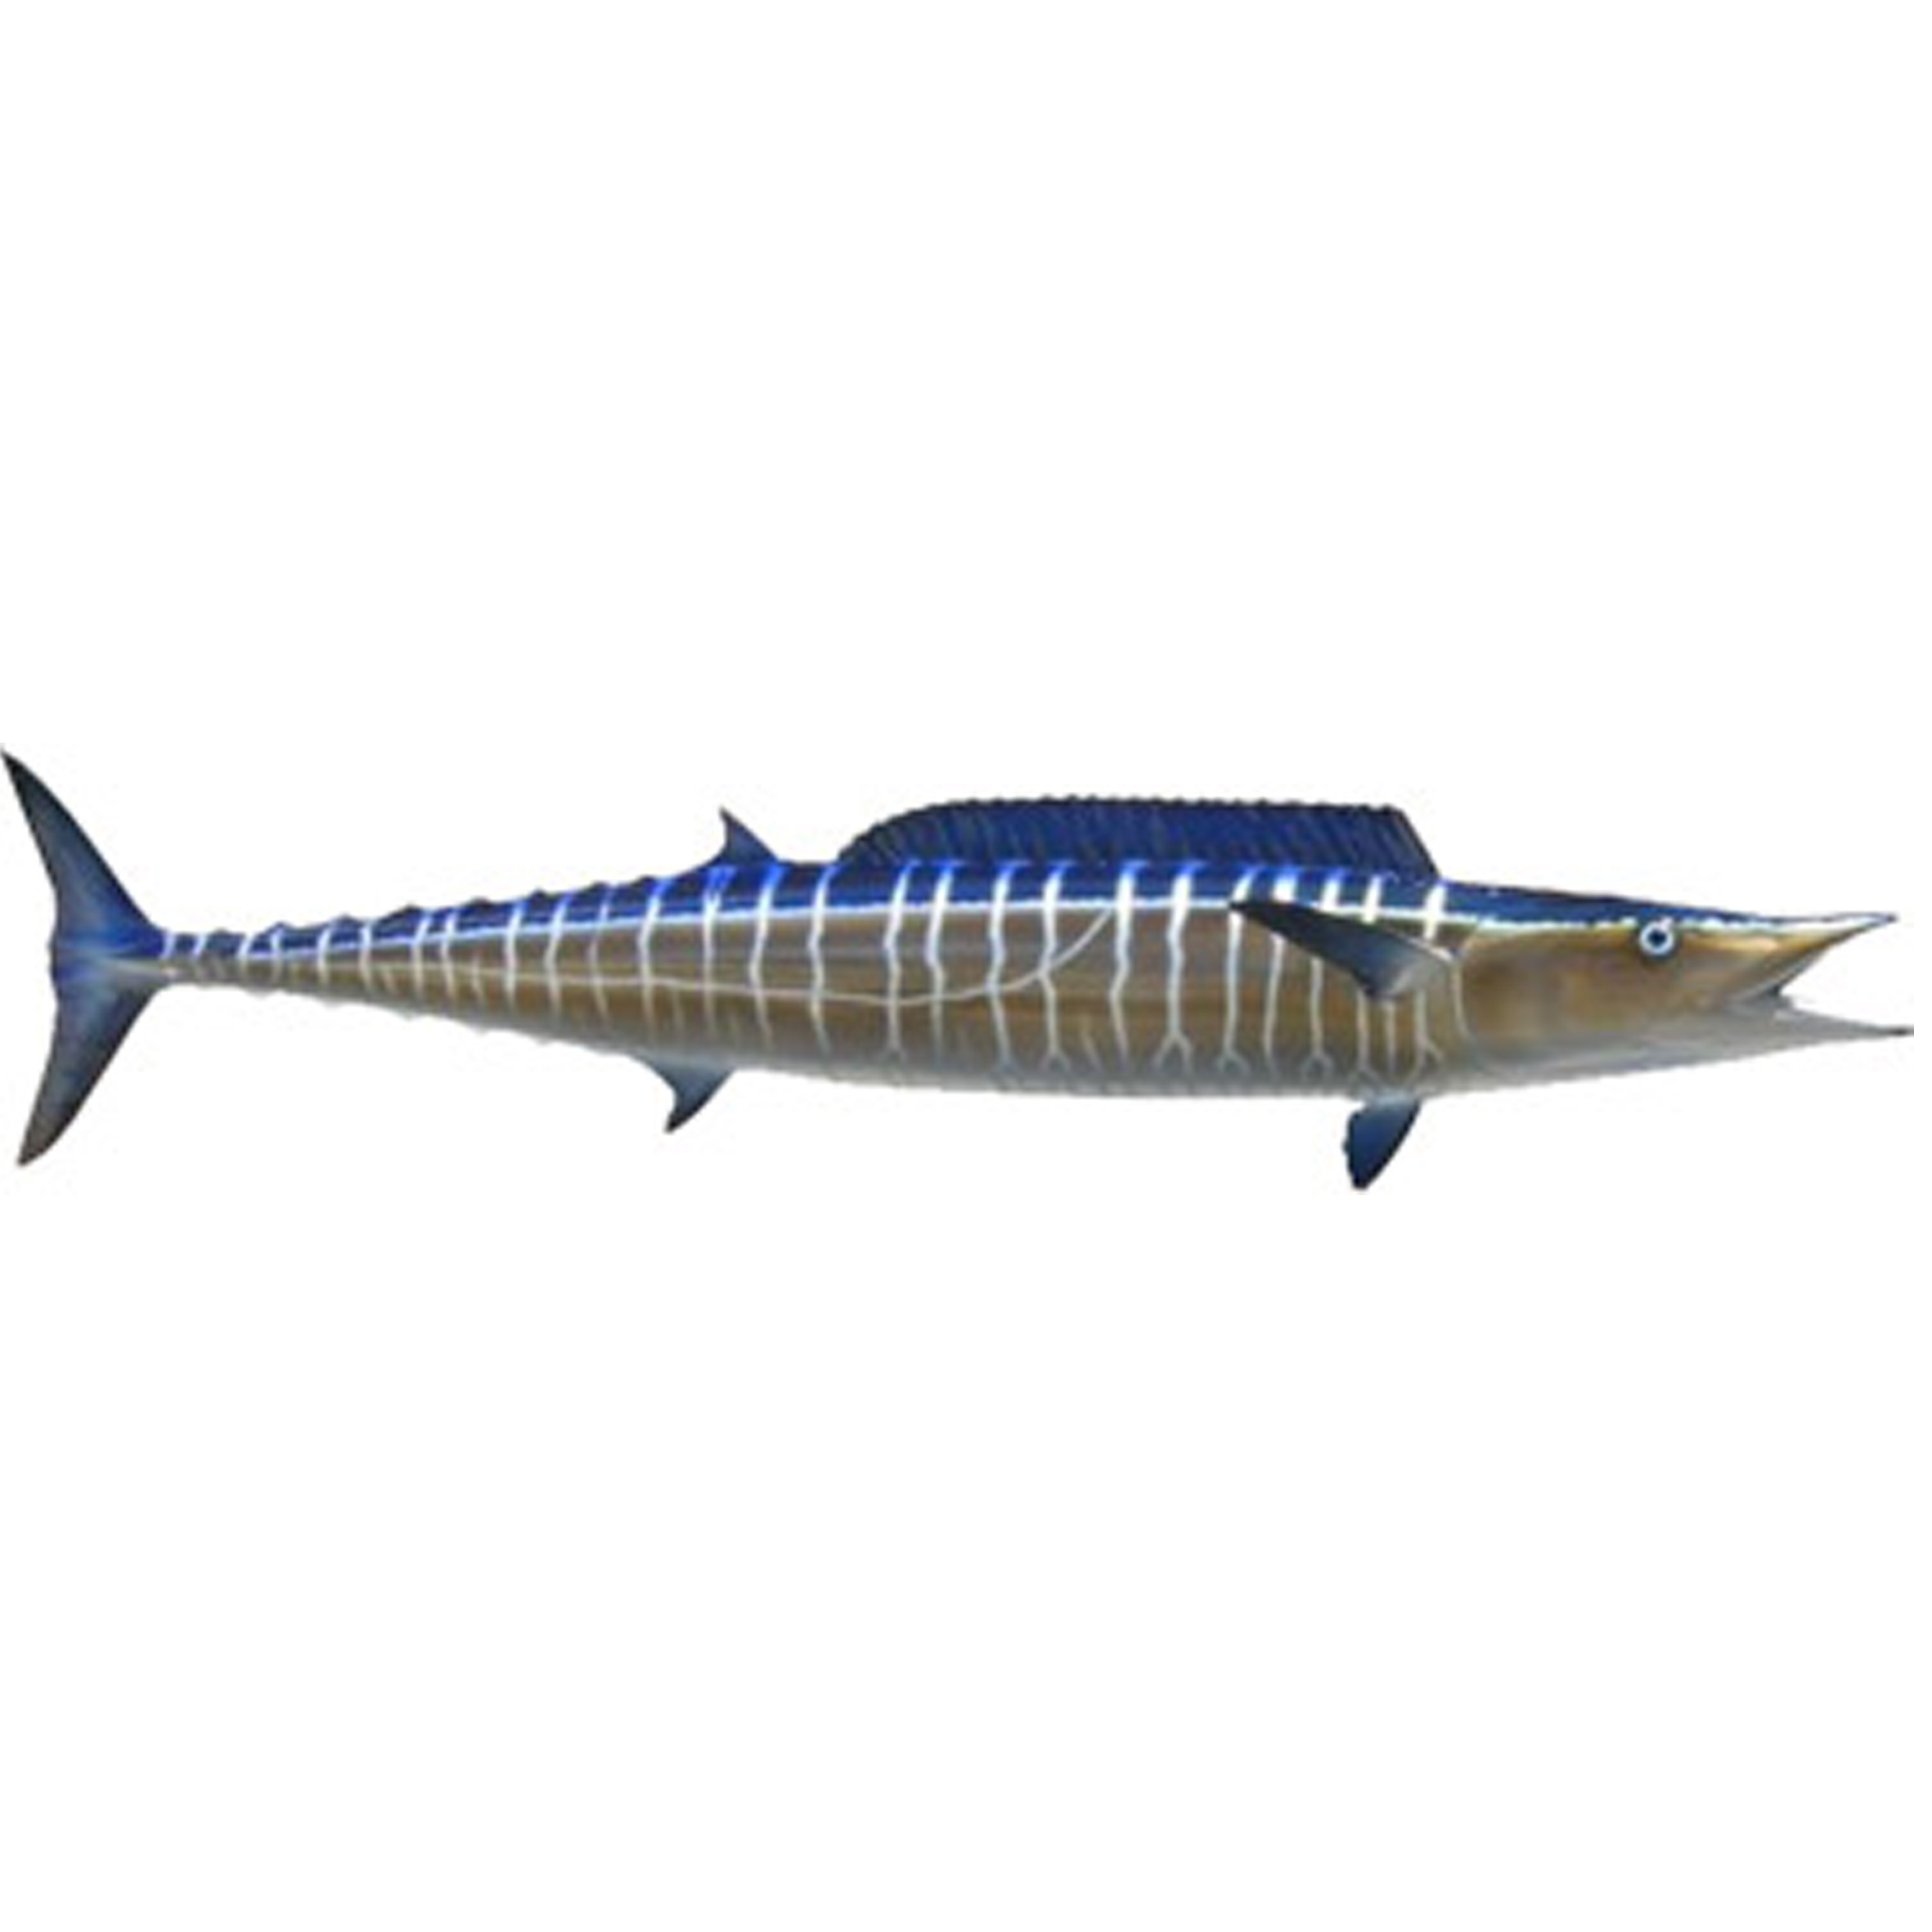 Wahoo   (Pa'ara)   The fastest accelerating fish in the ocean, the reel screams when a wahoo hits the lure. Good eating and more common during the winter months around Rarotonga. Smaller one are under 10kg but monsters getting close to 50kg are caught occasionally.